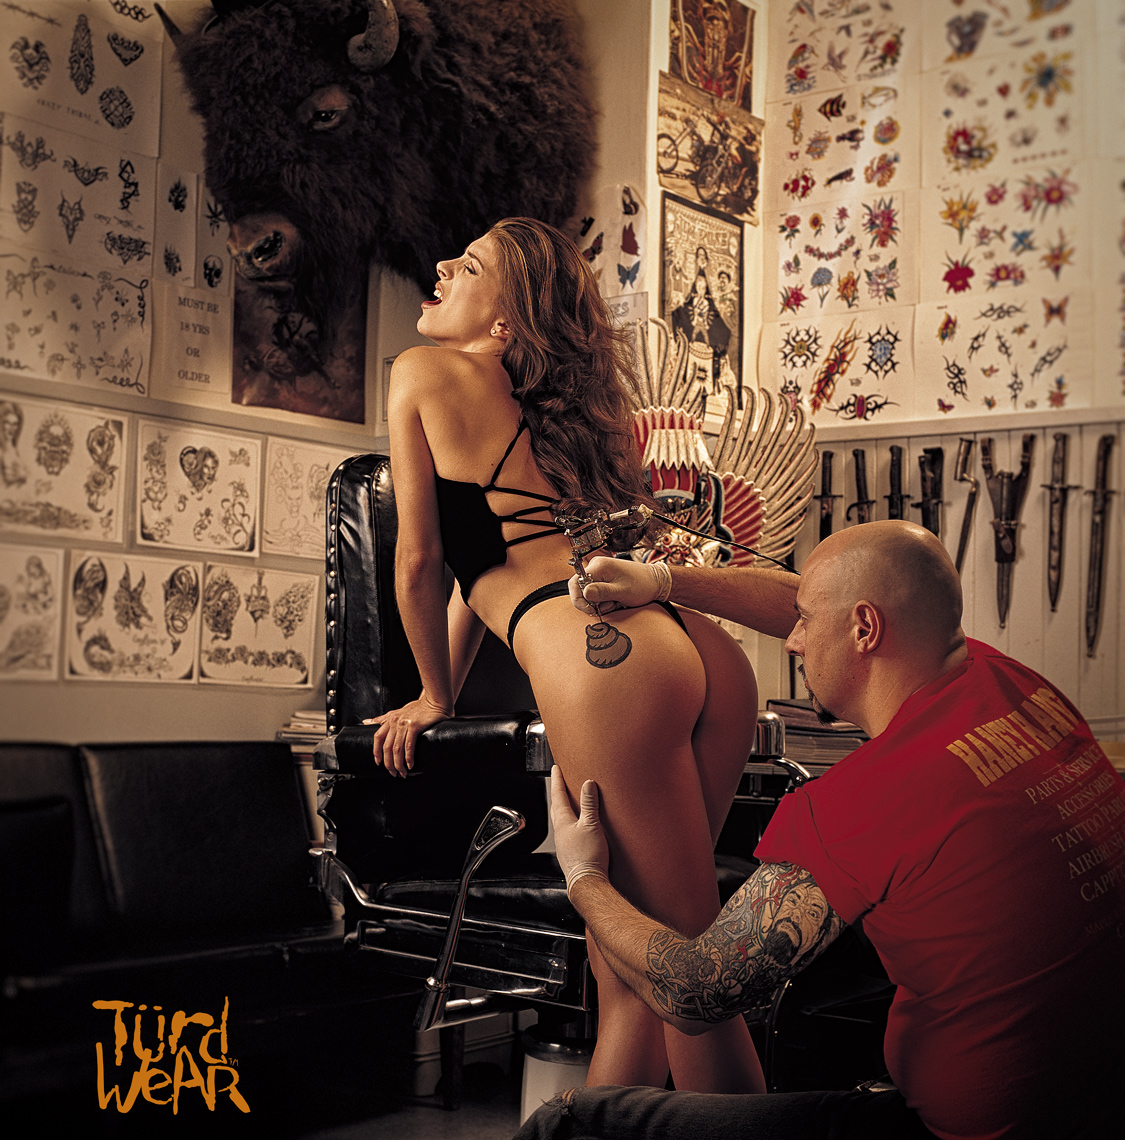 Turdwear girl gets a tattoo on her bum in a tattoo shop